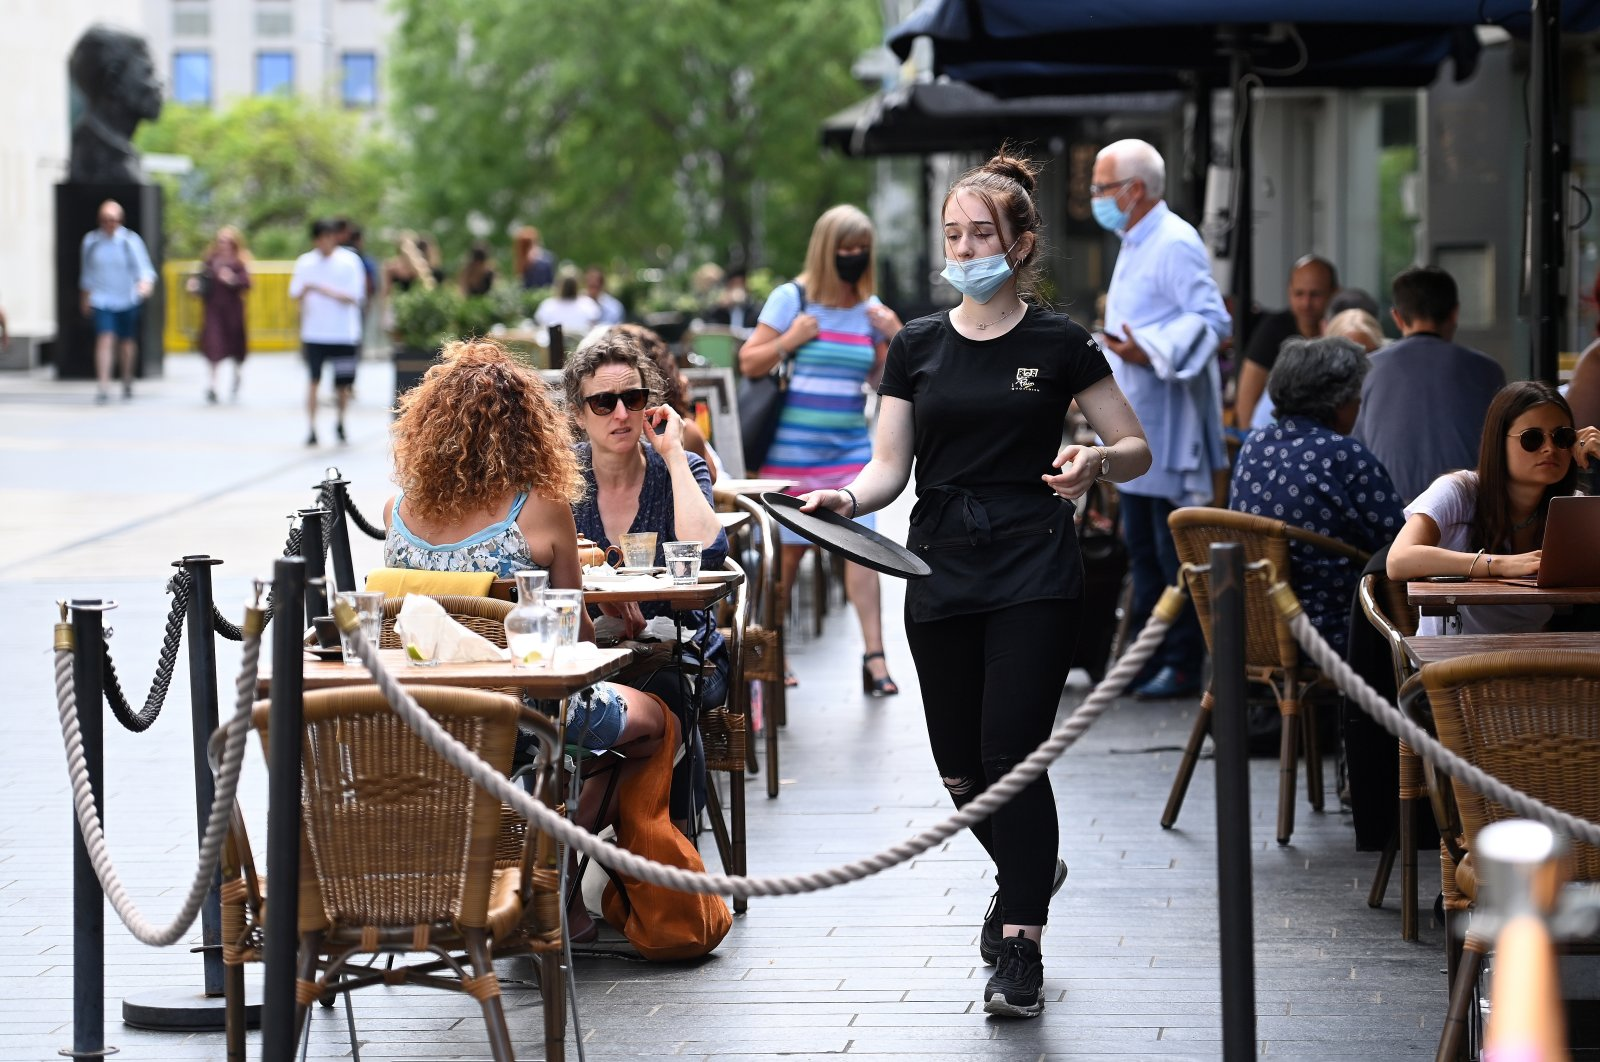 A busser moves to clean a table at a restaurant in London, Britain, June 15, 2021. (EPA Photo)